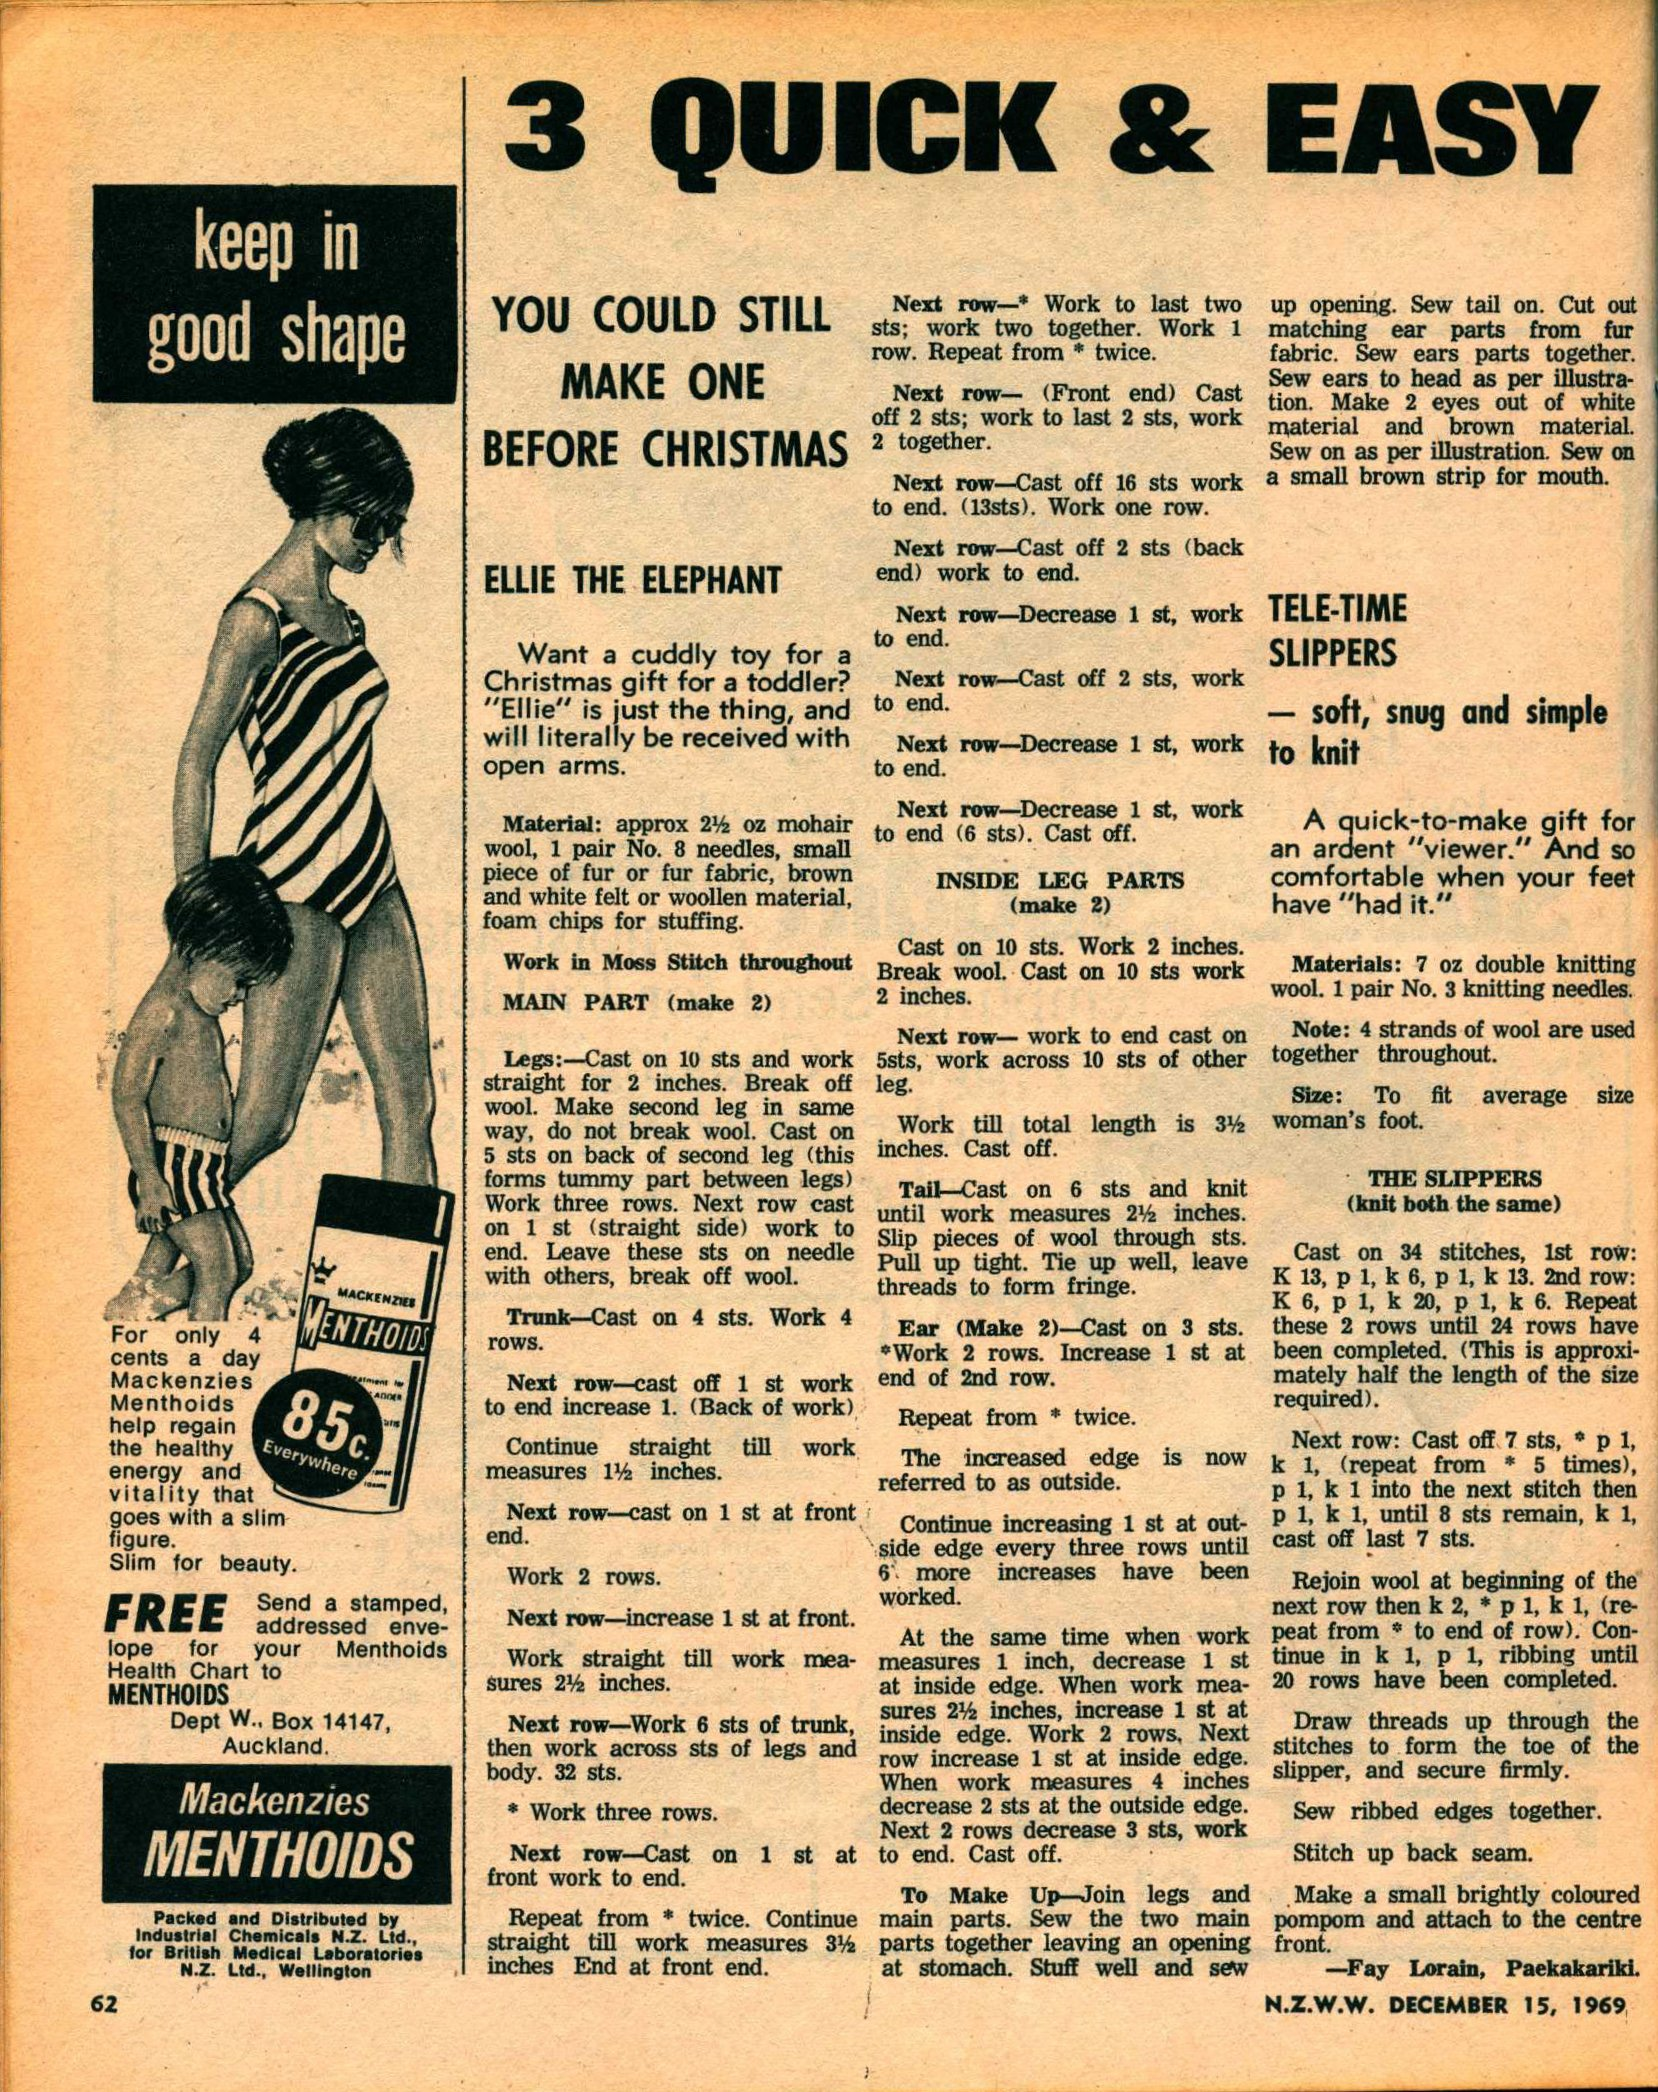 New Zealand Woman's Weekly. December 15 1969.